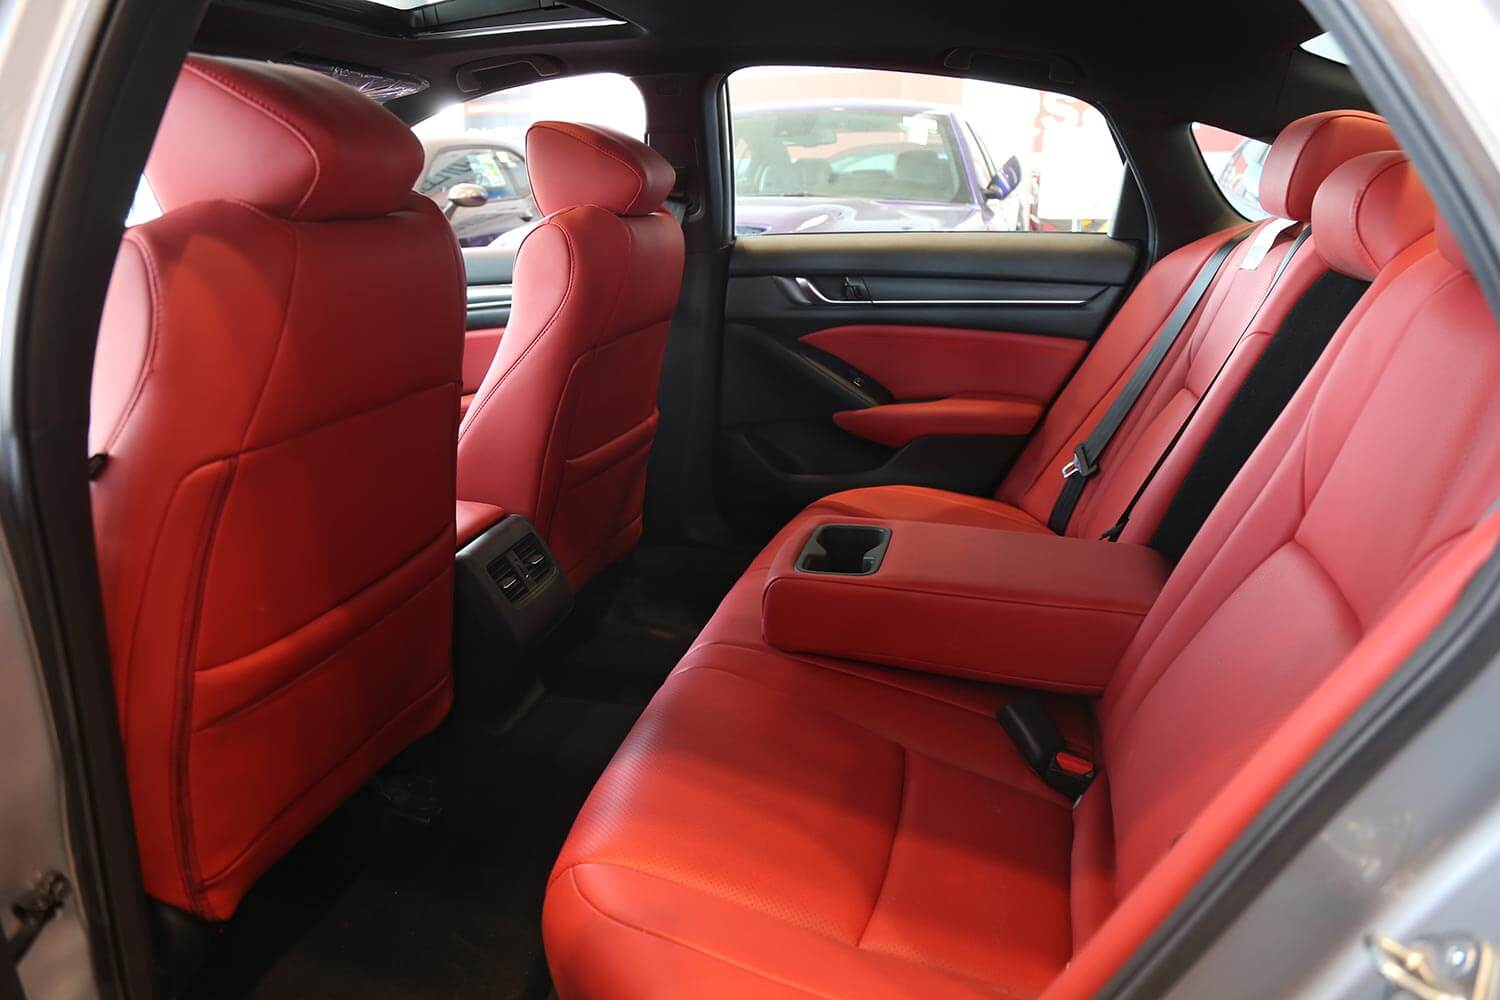 Interior Image for  HONDA Accord LX SPORT red leather 2019